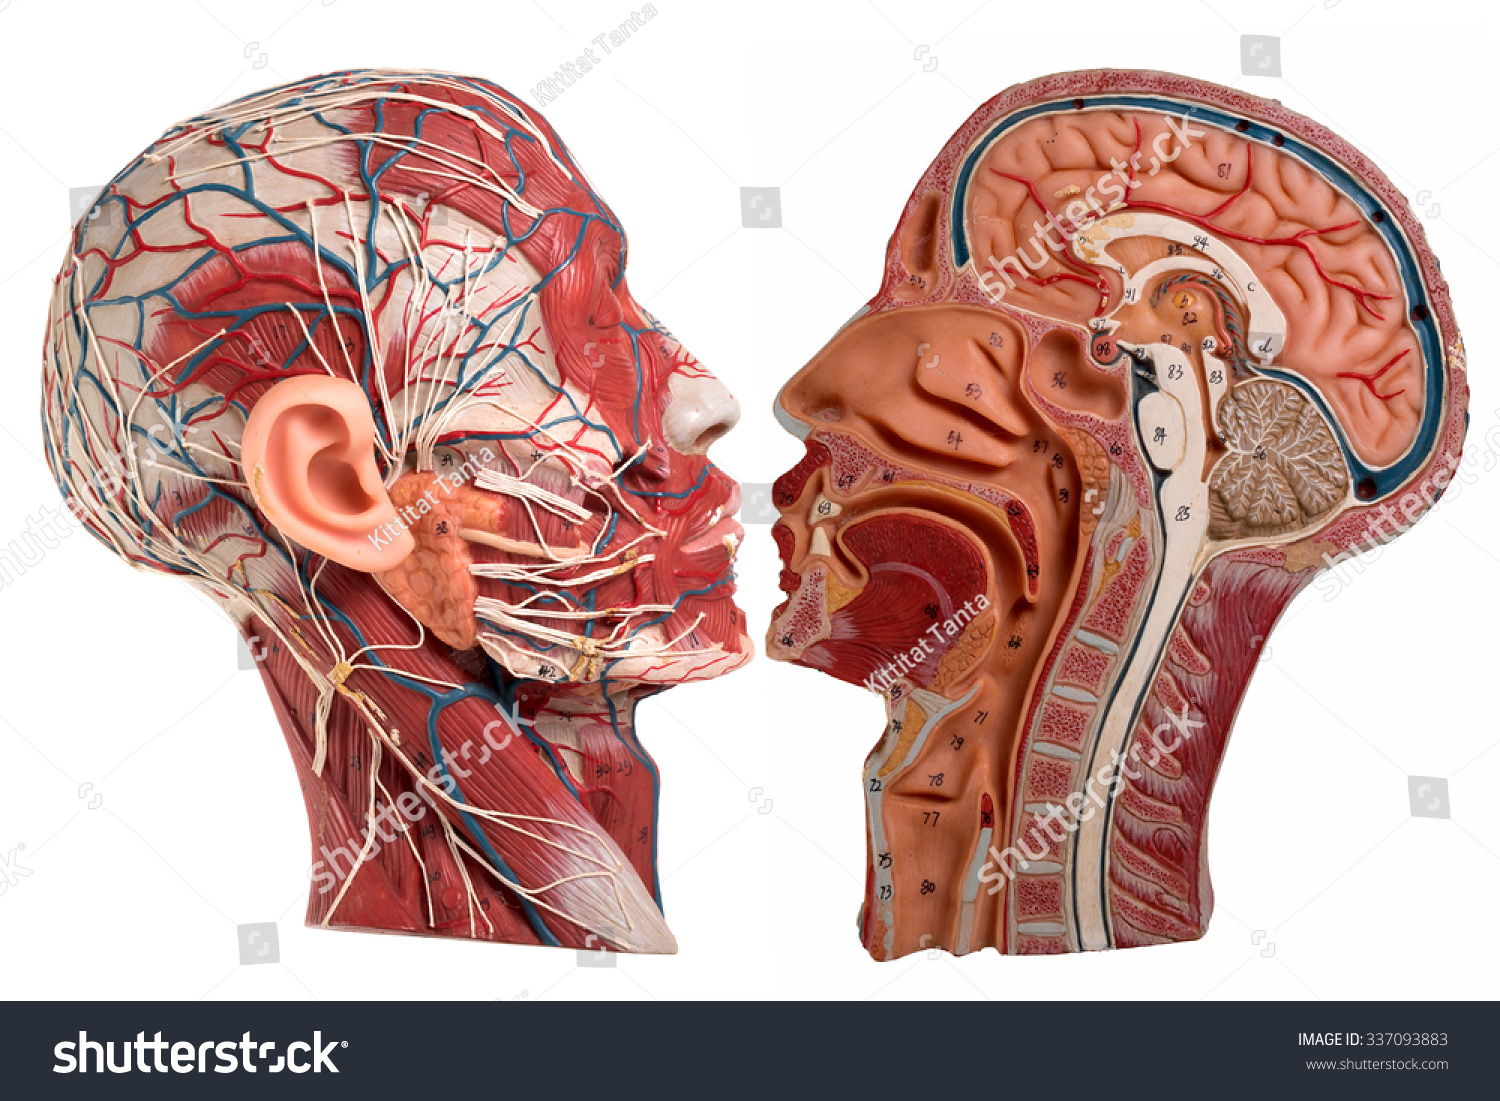 Model Human Face Anatomy Stock Photo (Edit Now) 337093883 - Shutterstock